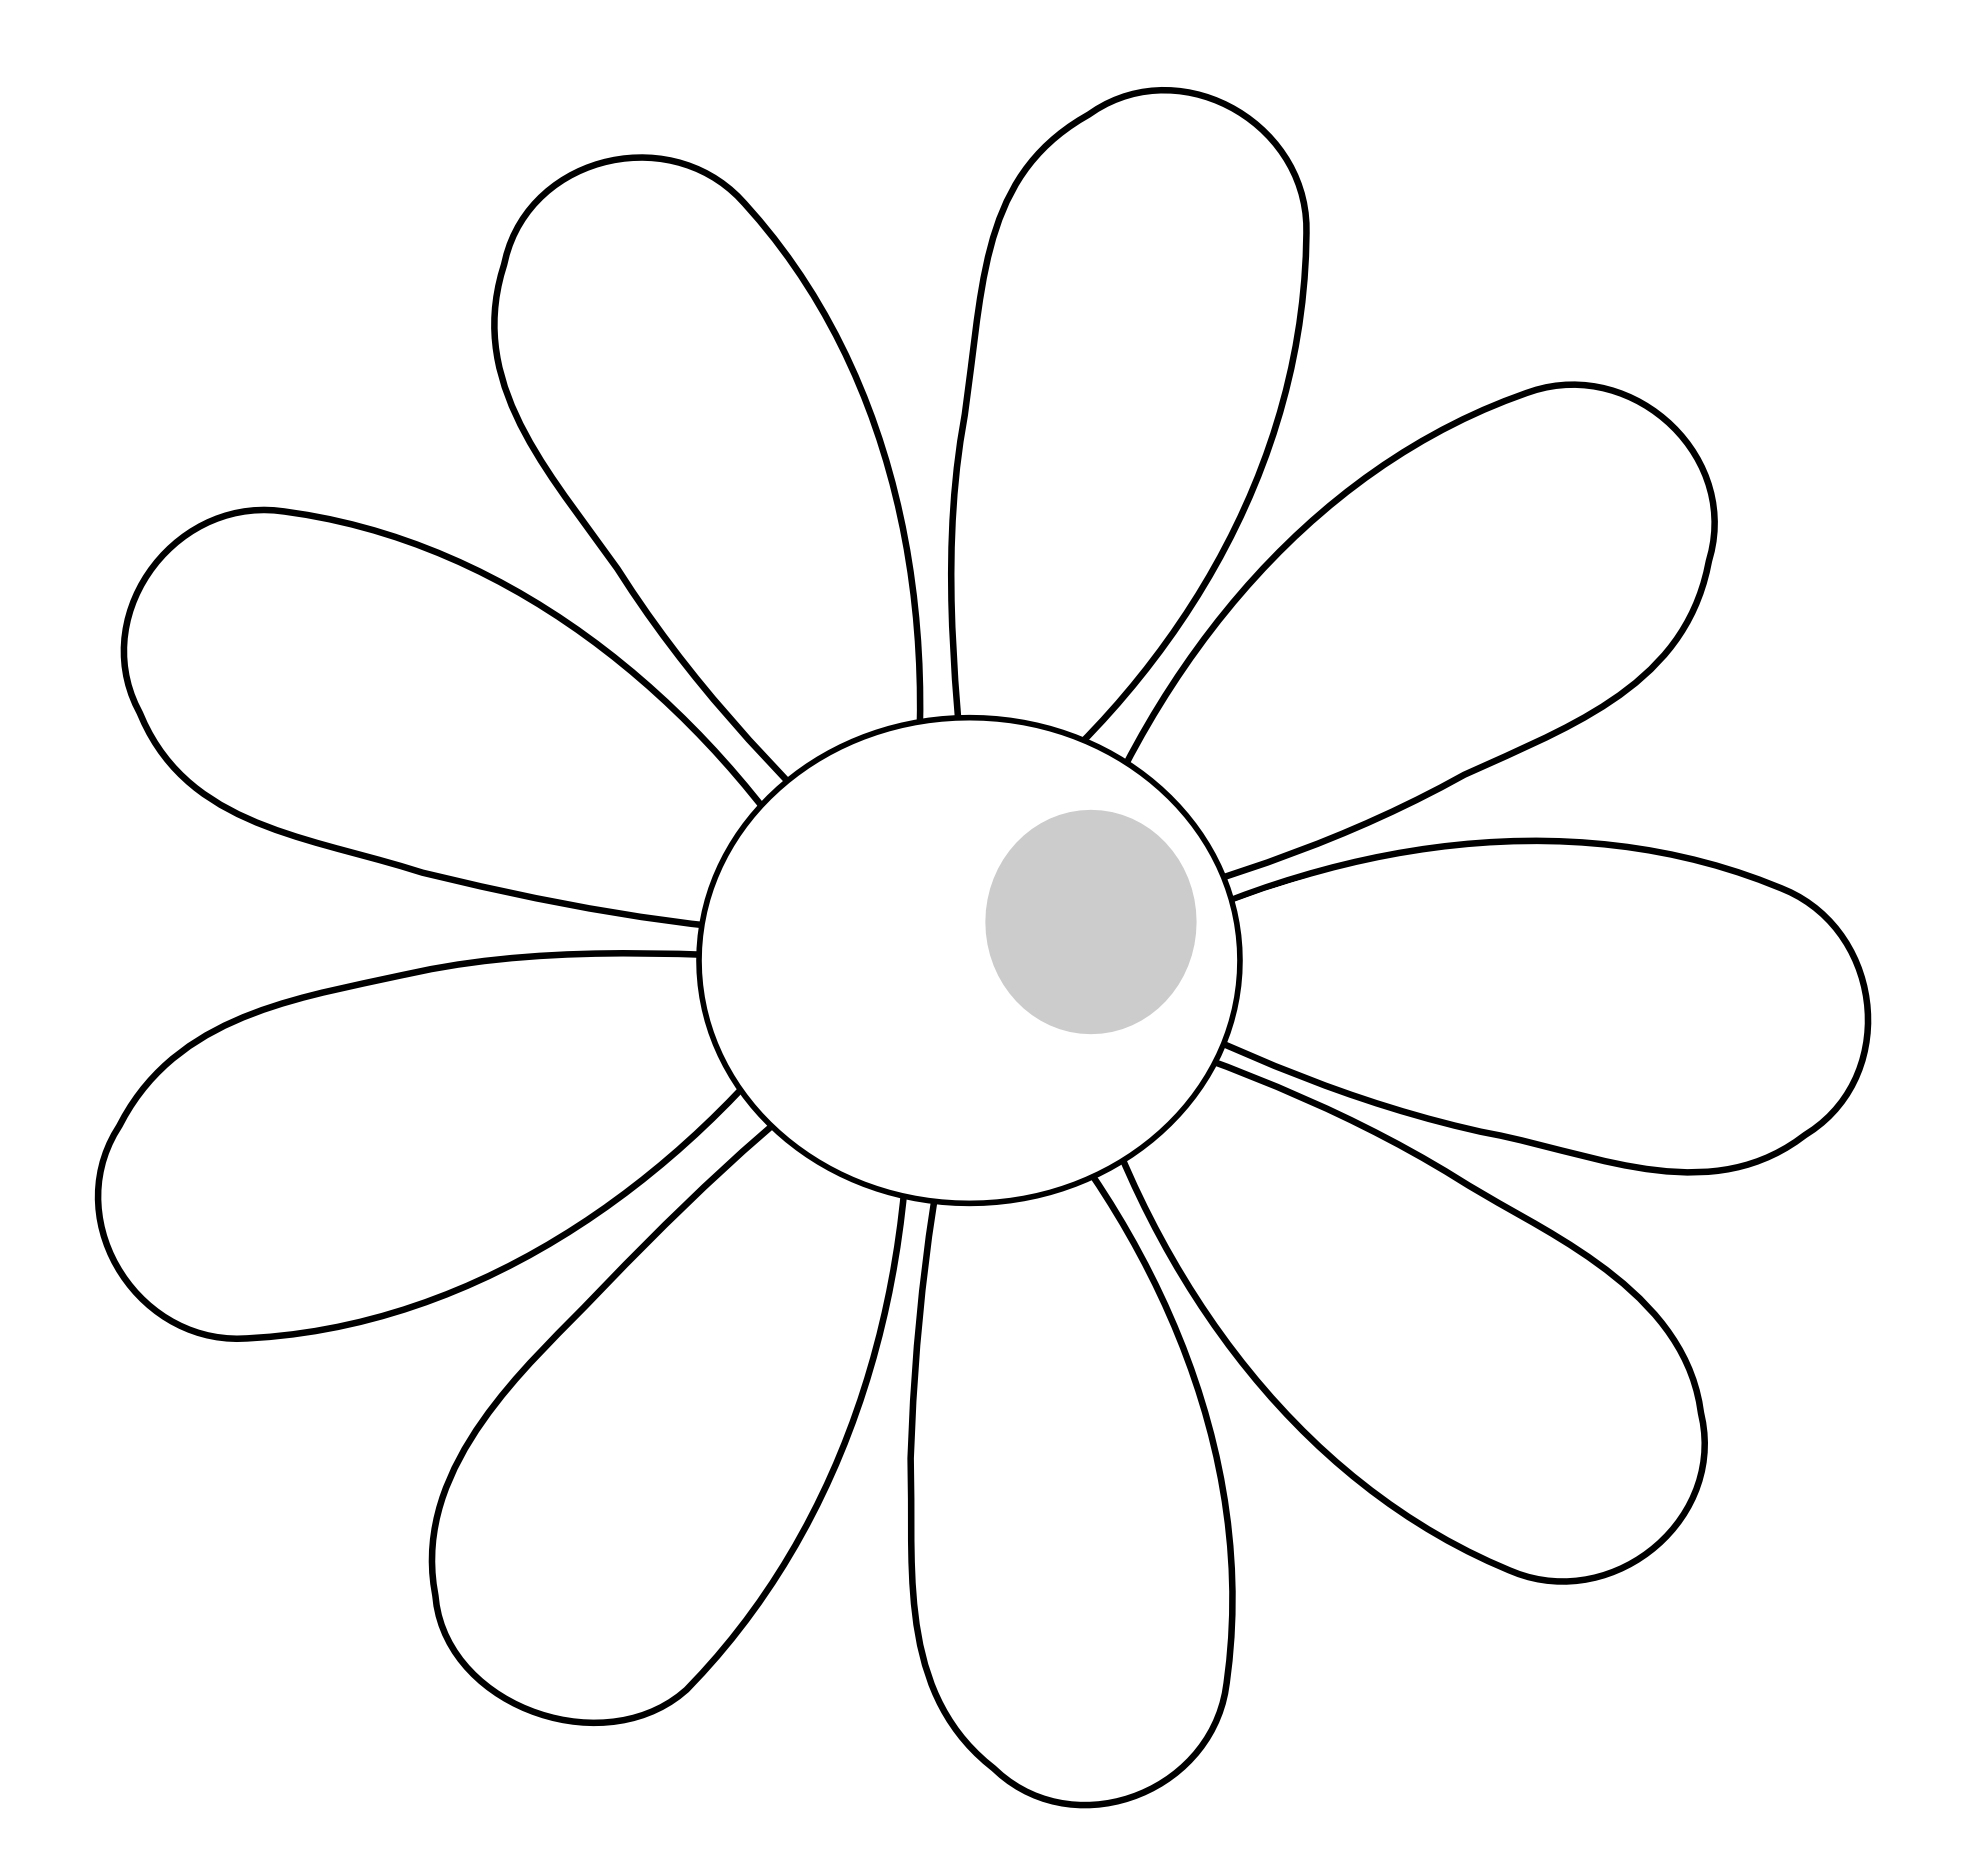 Simple Flowers Clipart Black And White.